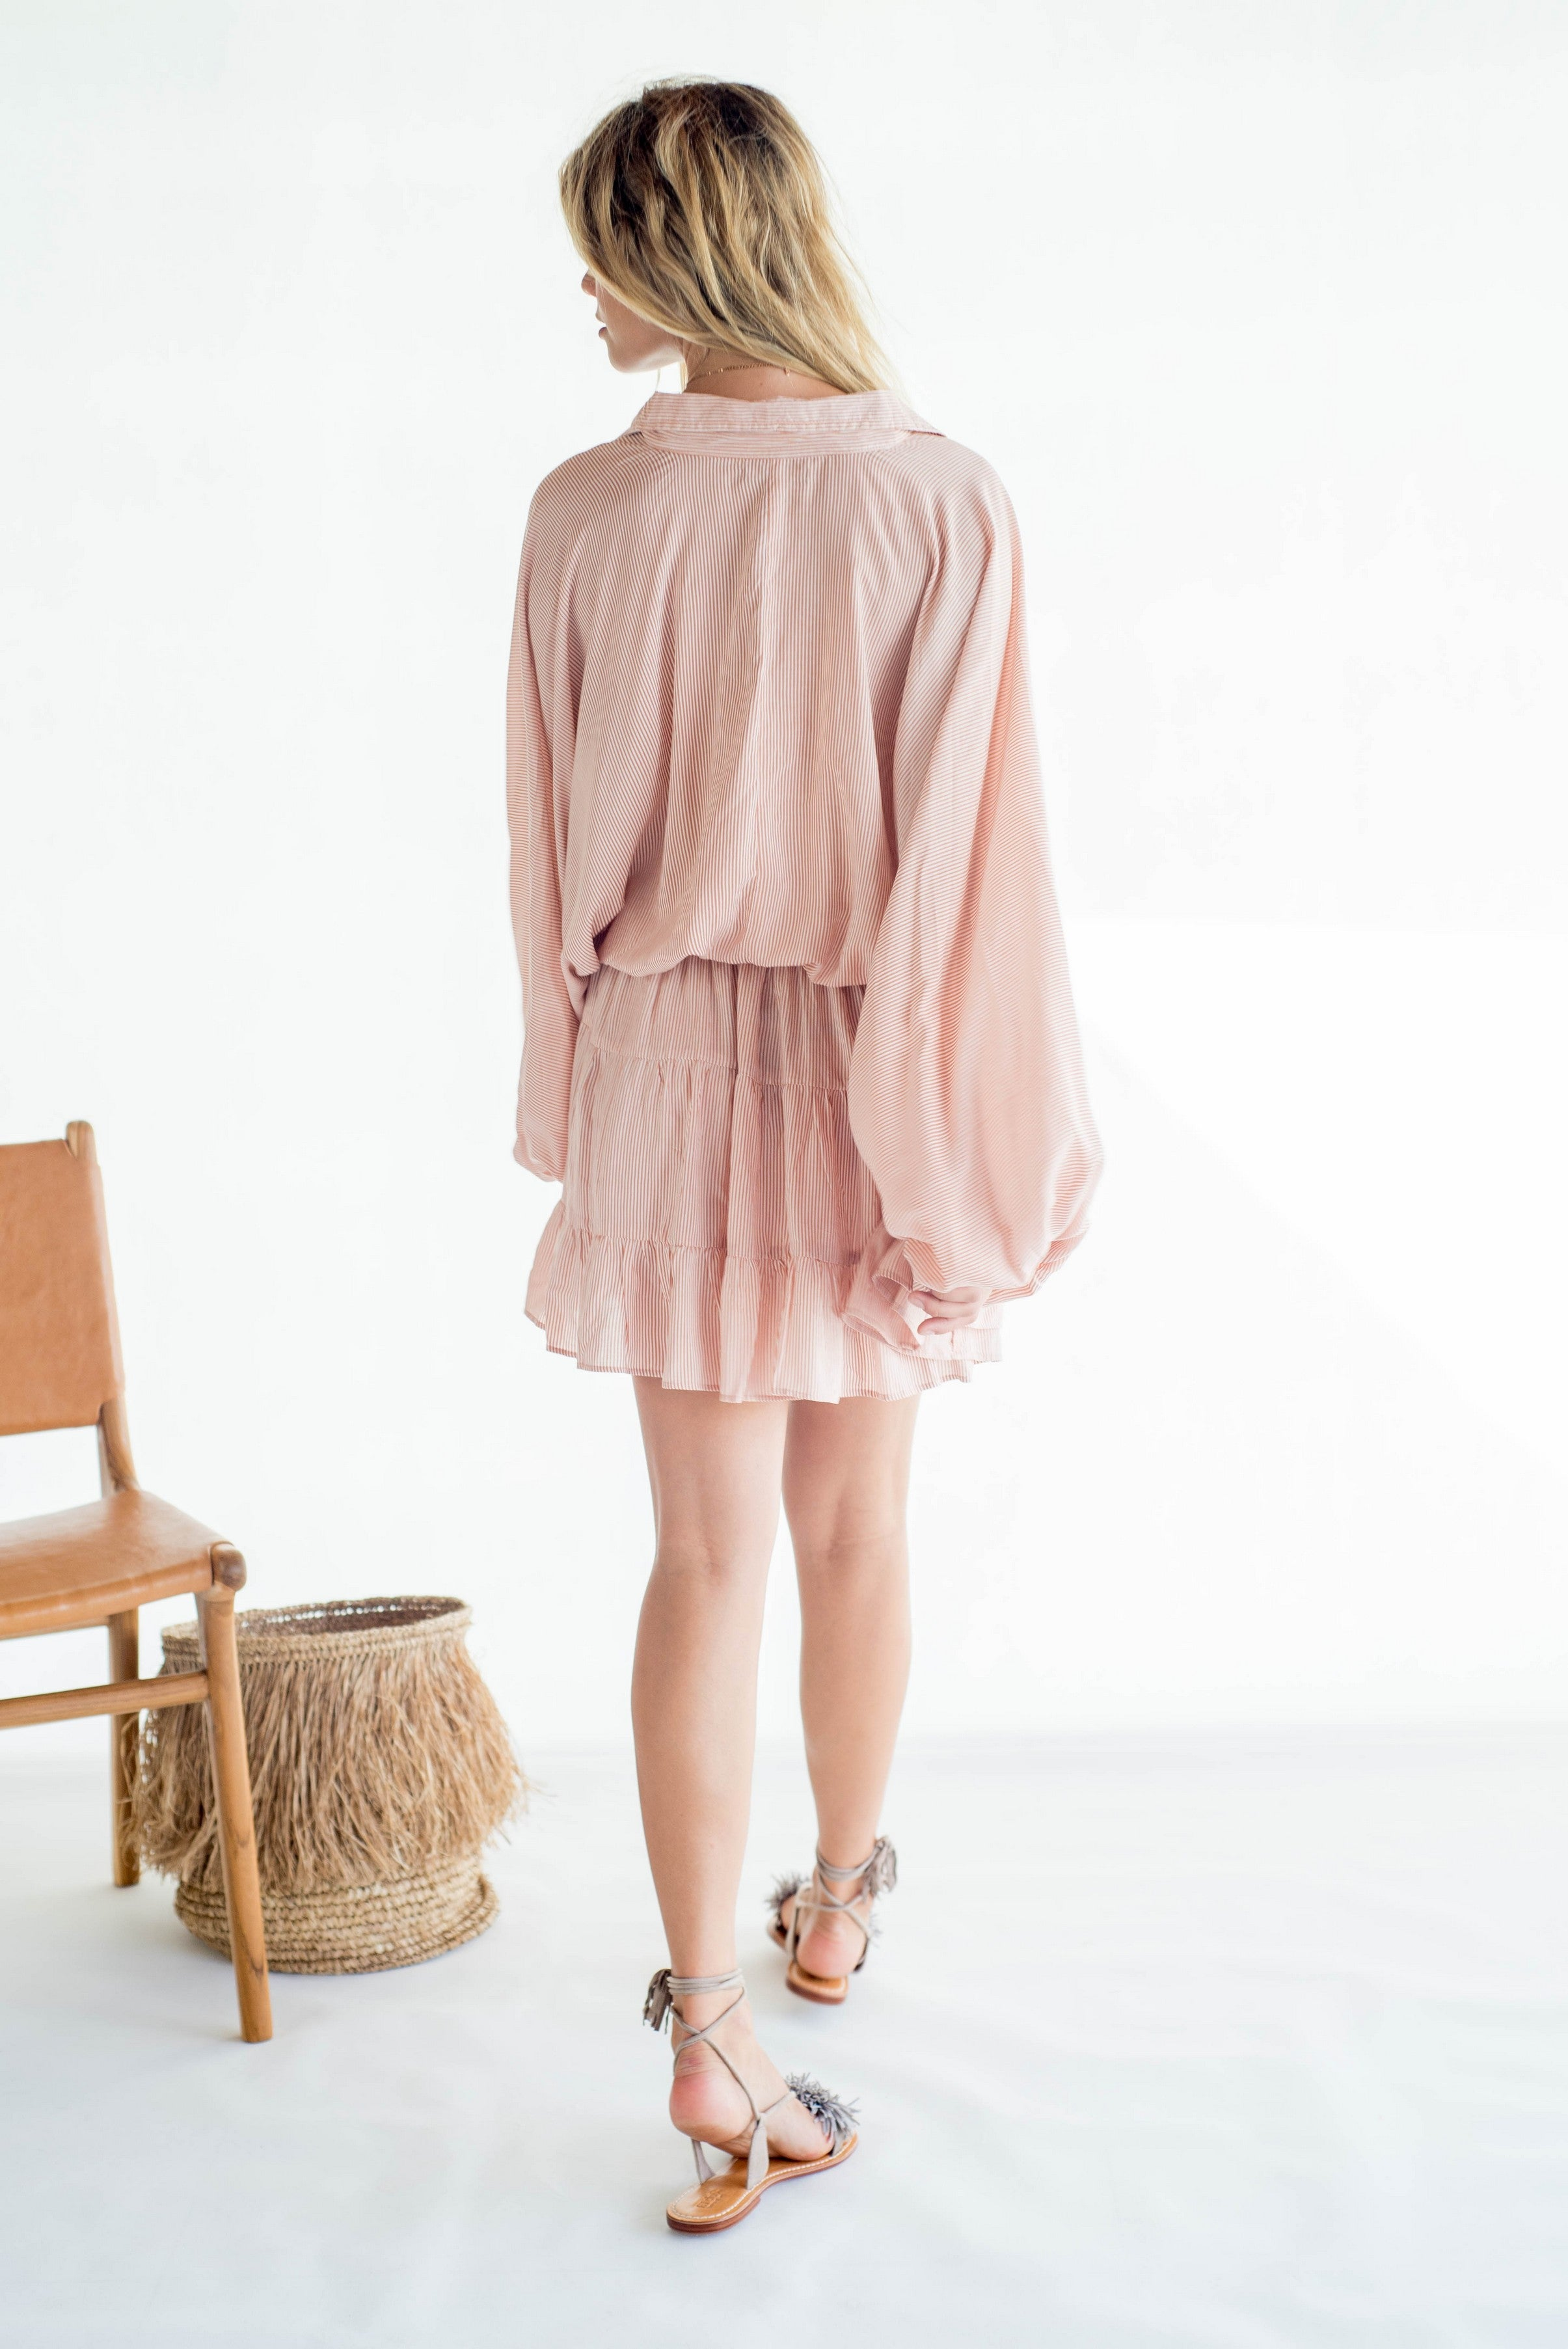 La Confection - Inka - Dress in Stripe coppertan and white rayon